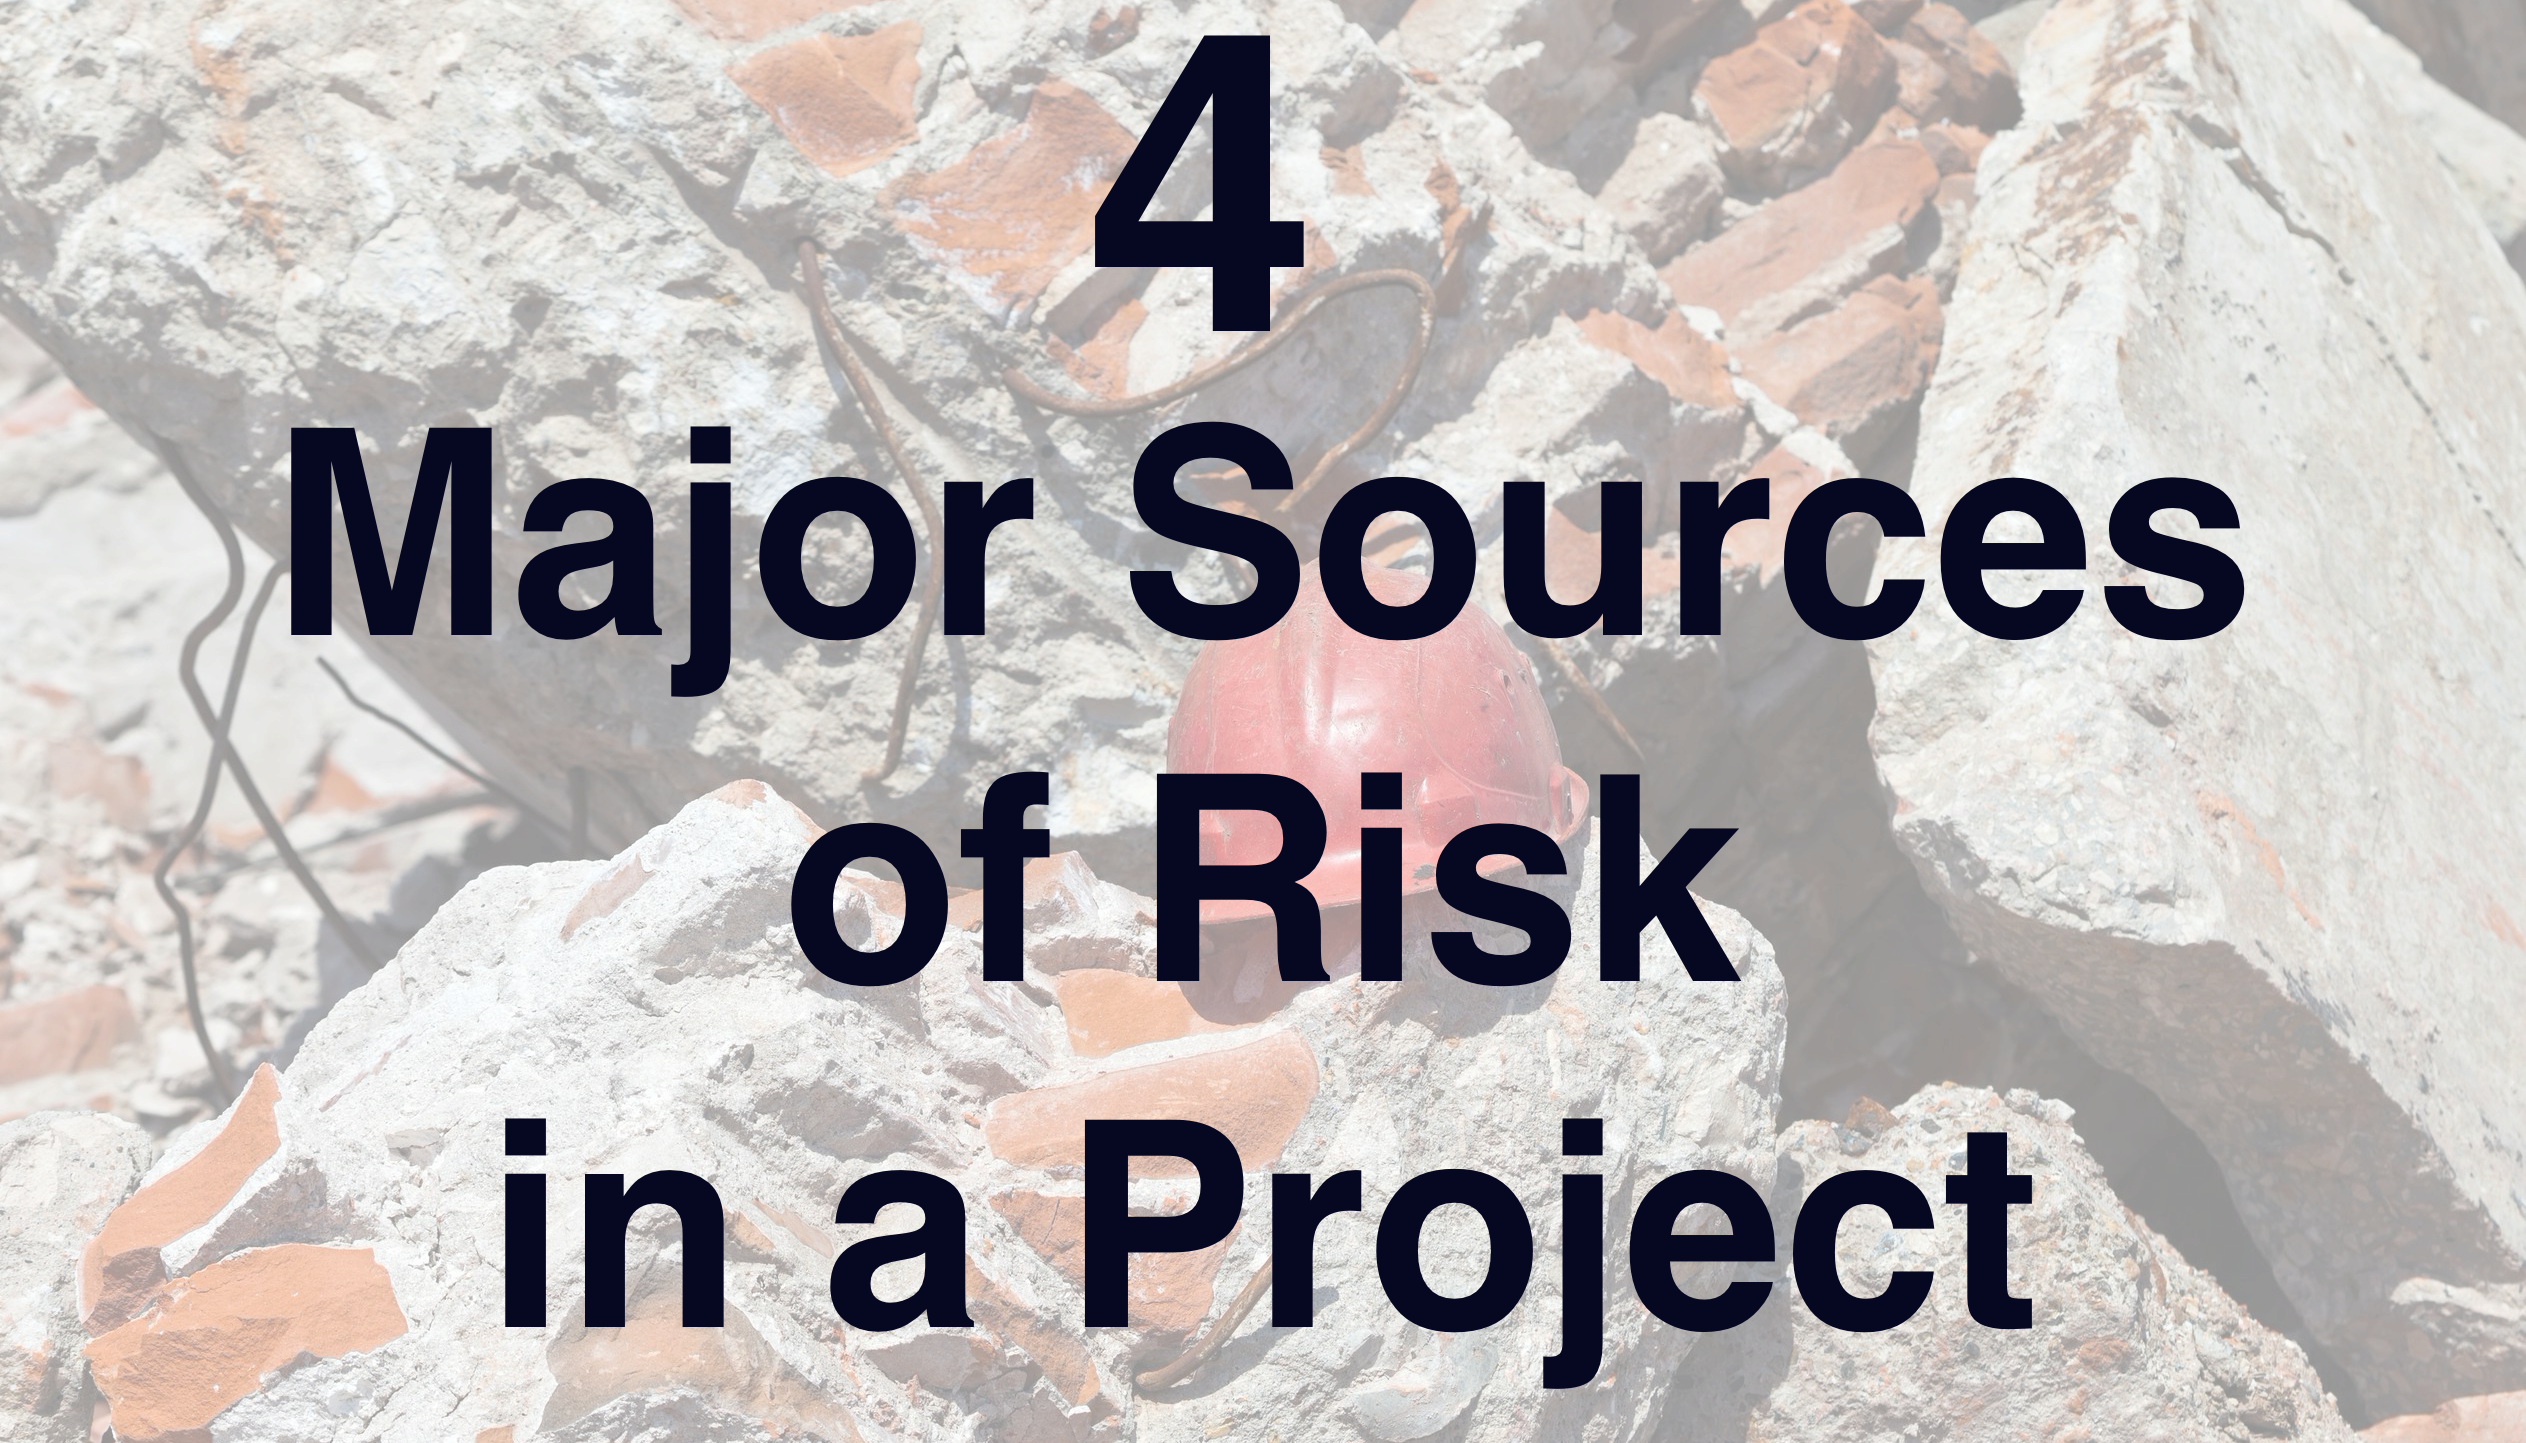 Major Sources of Risk in a Project